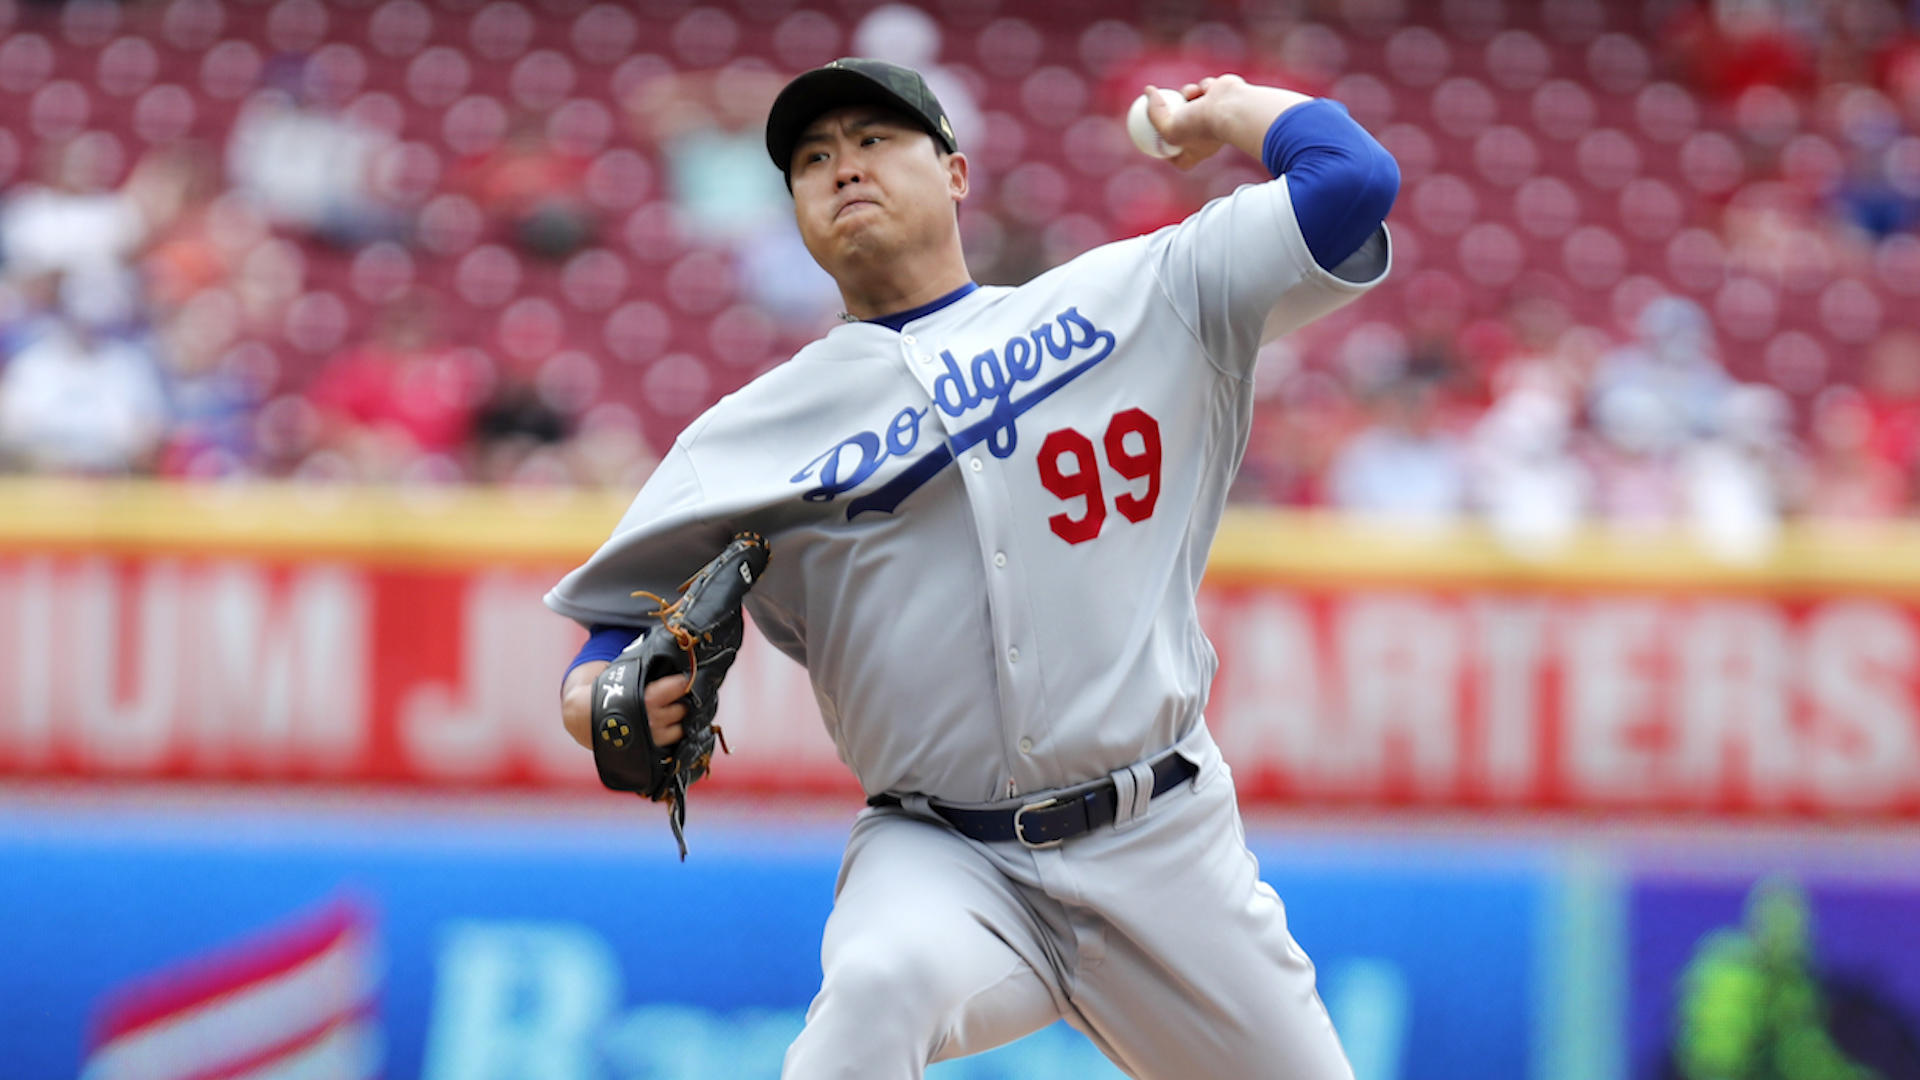 MLB odds, picks, lines, predictions, schedule, best bets for May 20: This three-way parlay pays almost 5-1